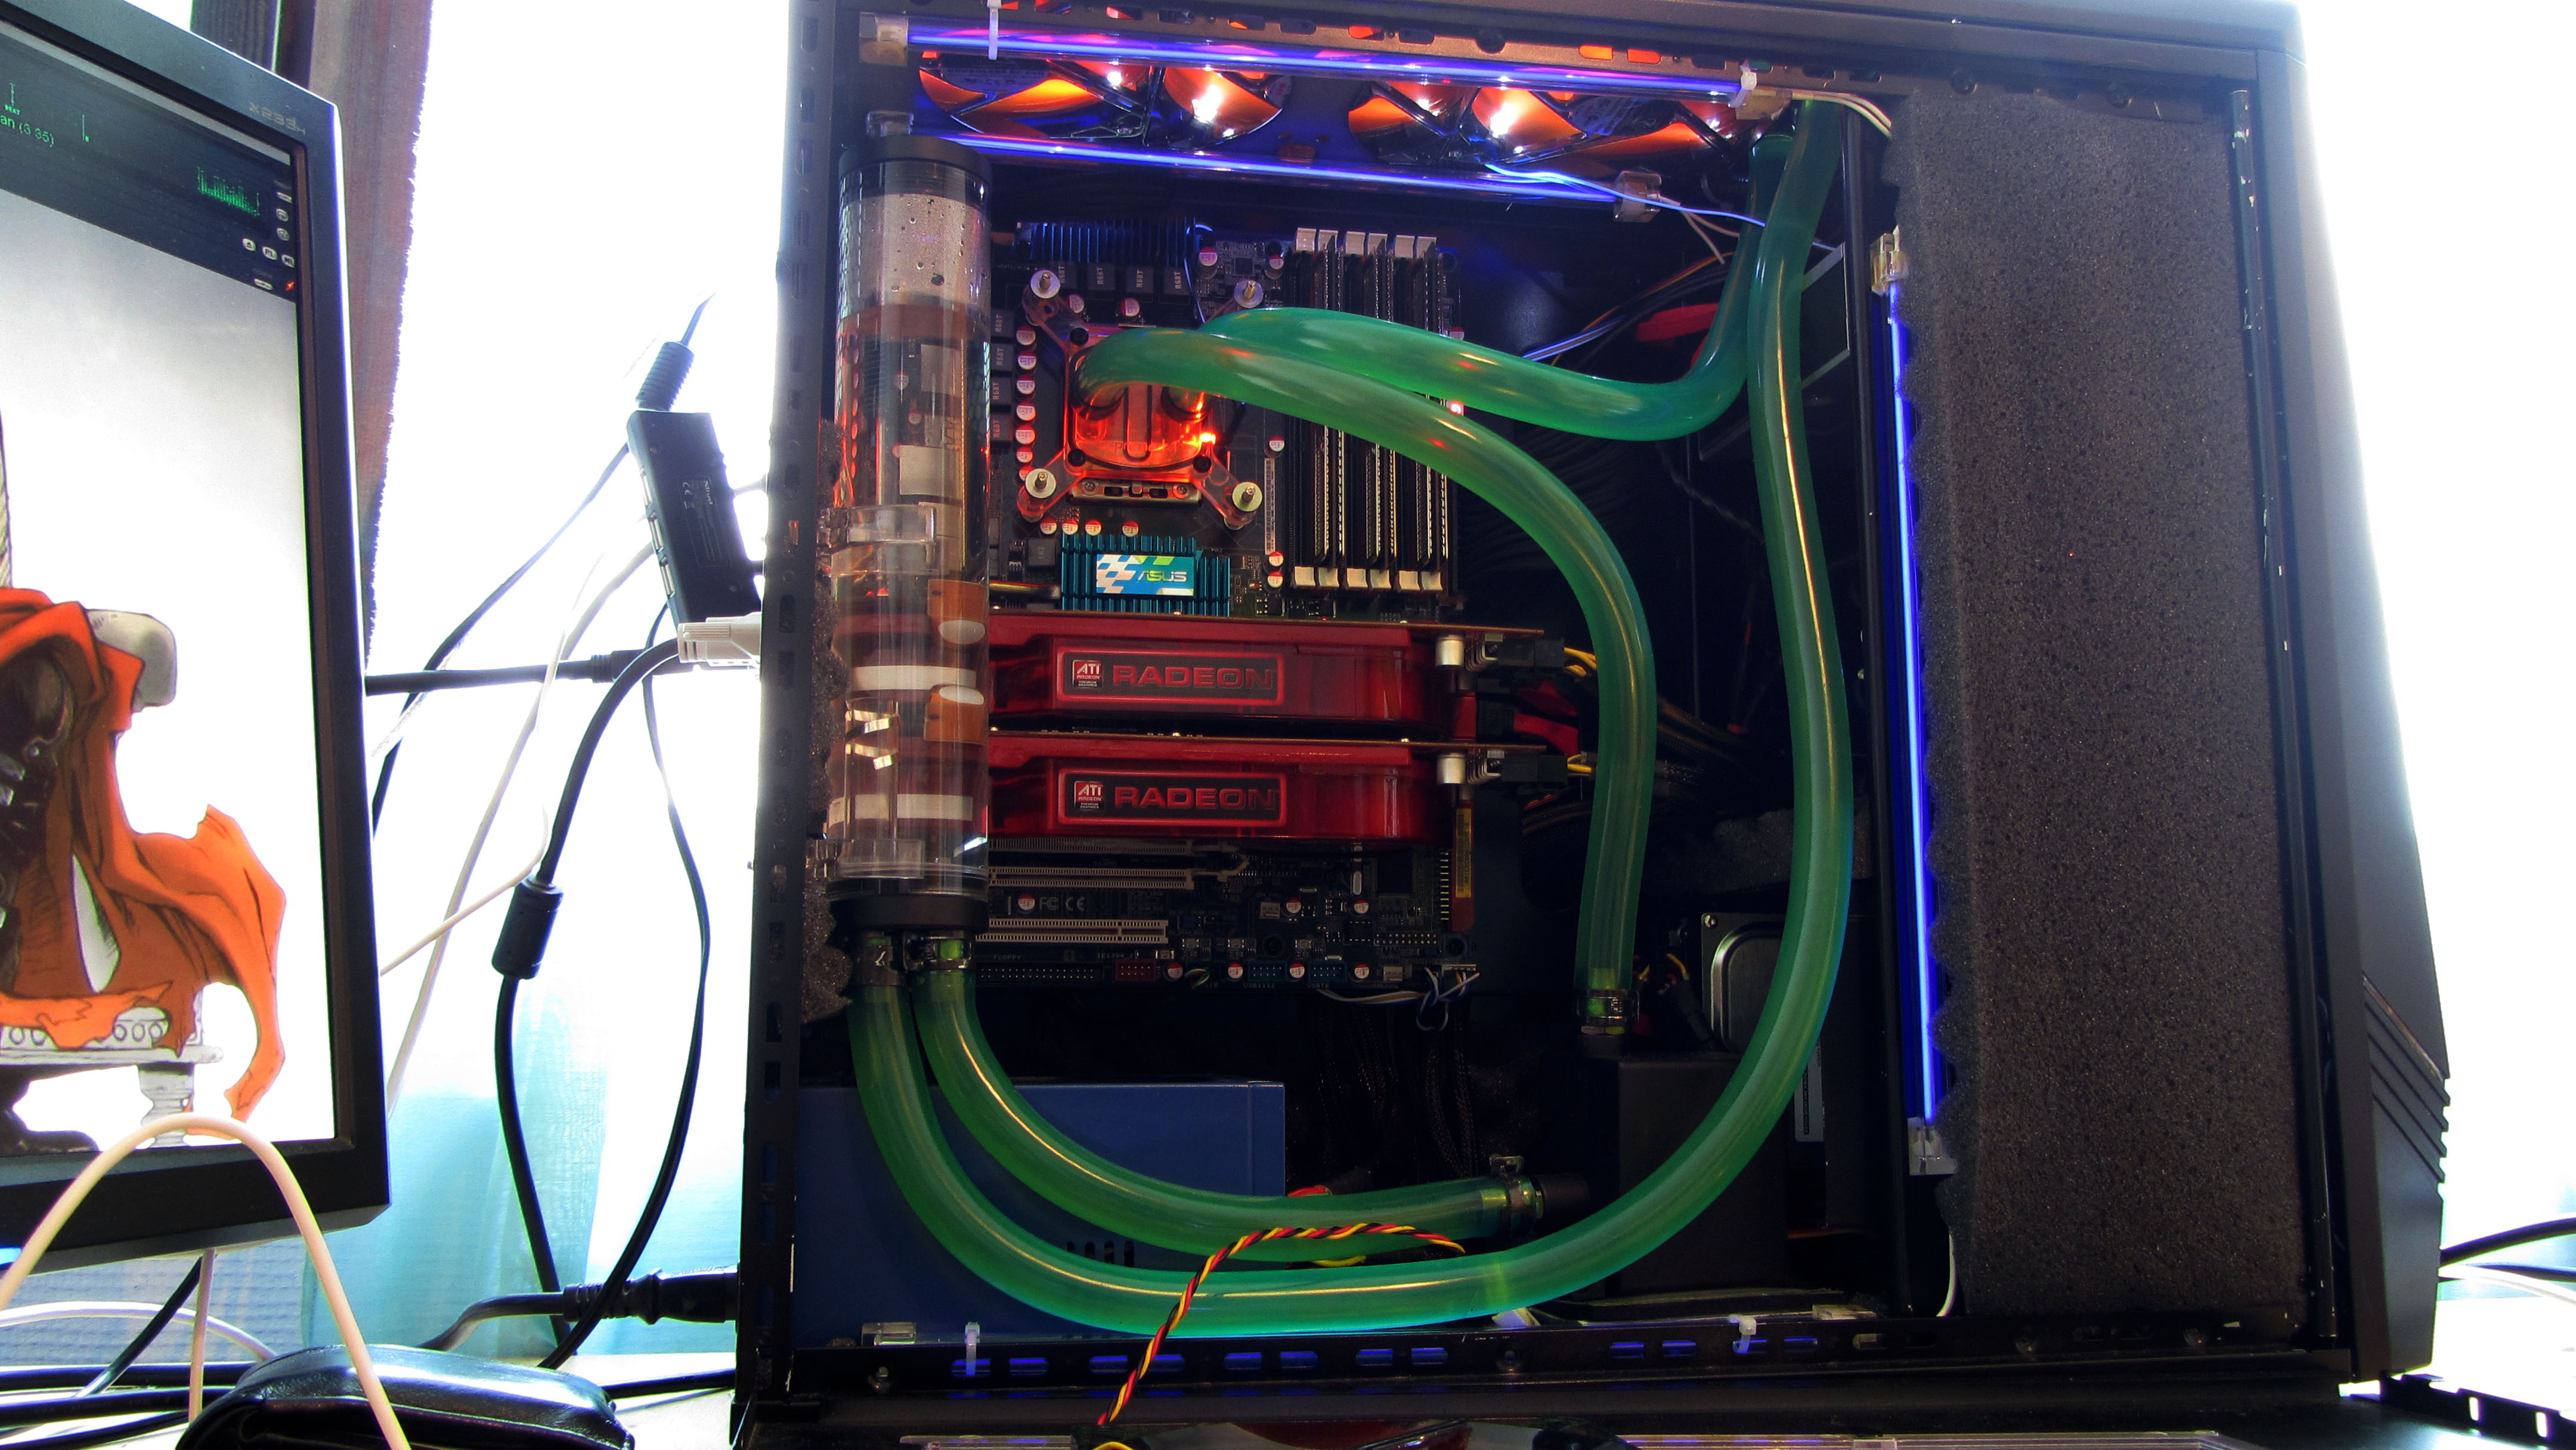 Bit_reapers water cooled rig